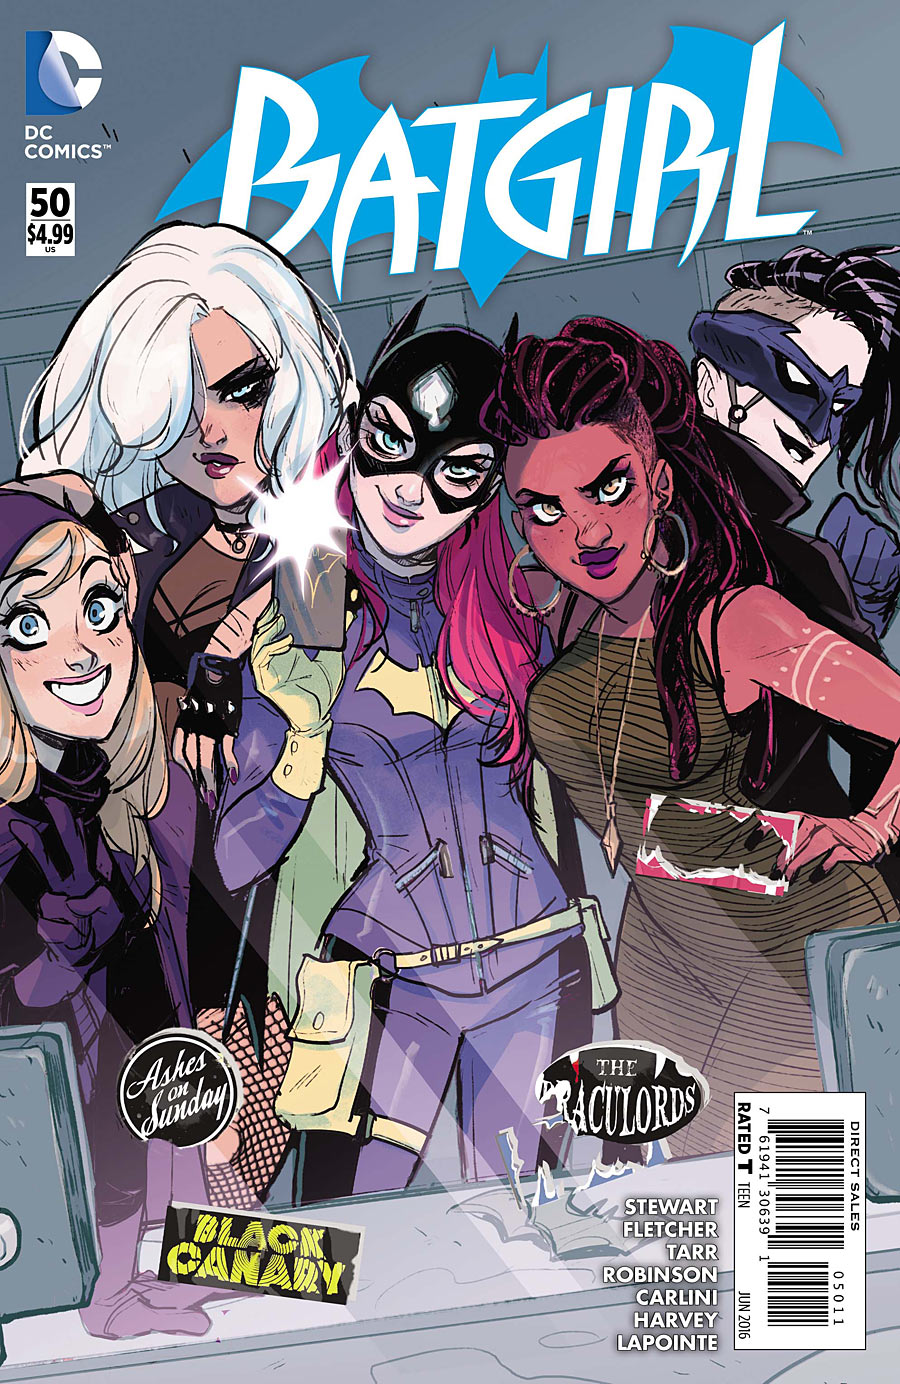 Batgirl #50 Cover by Babs Tarr